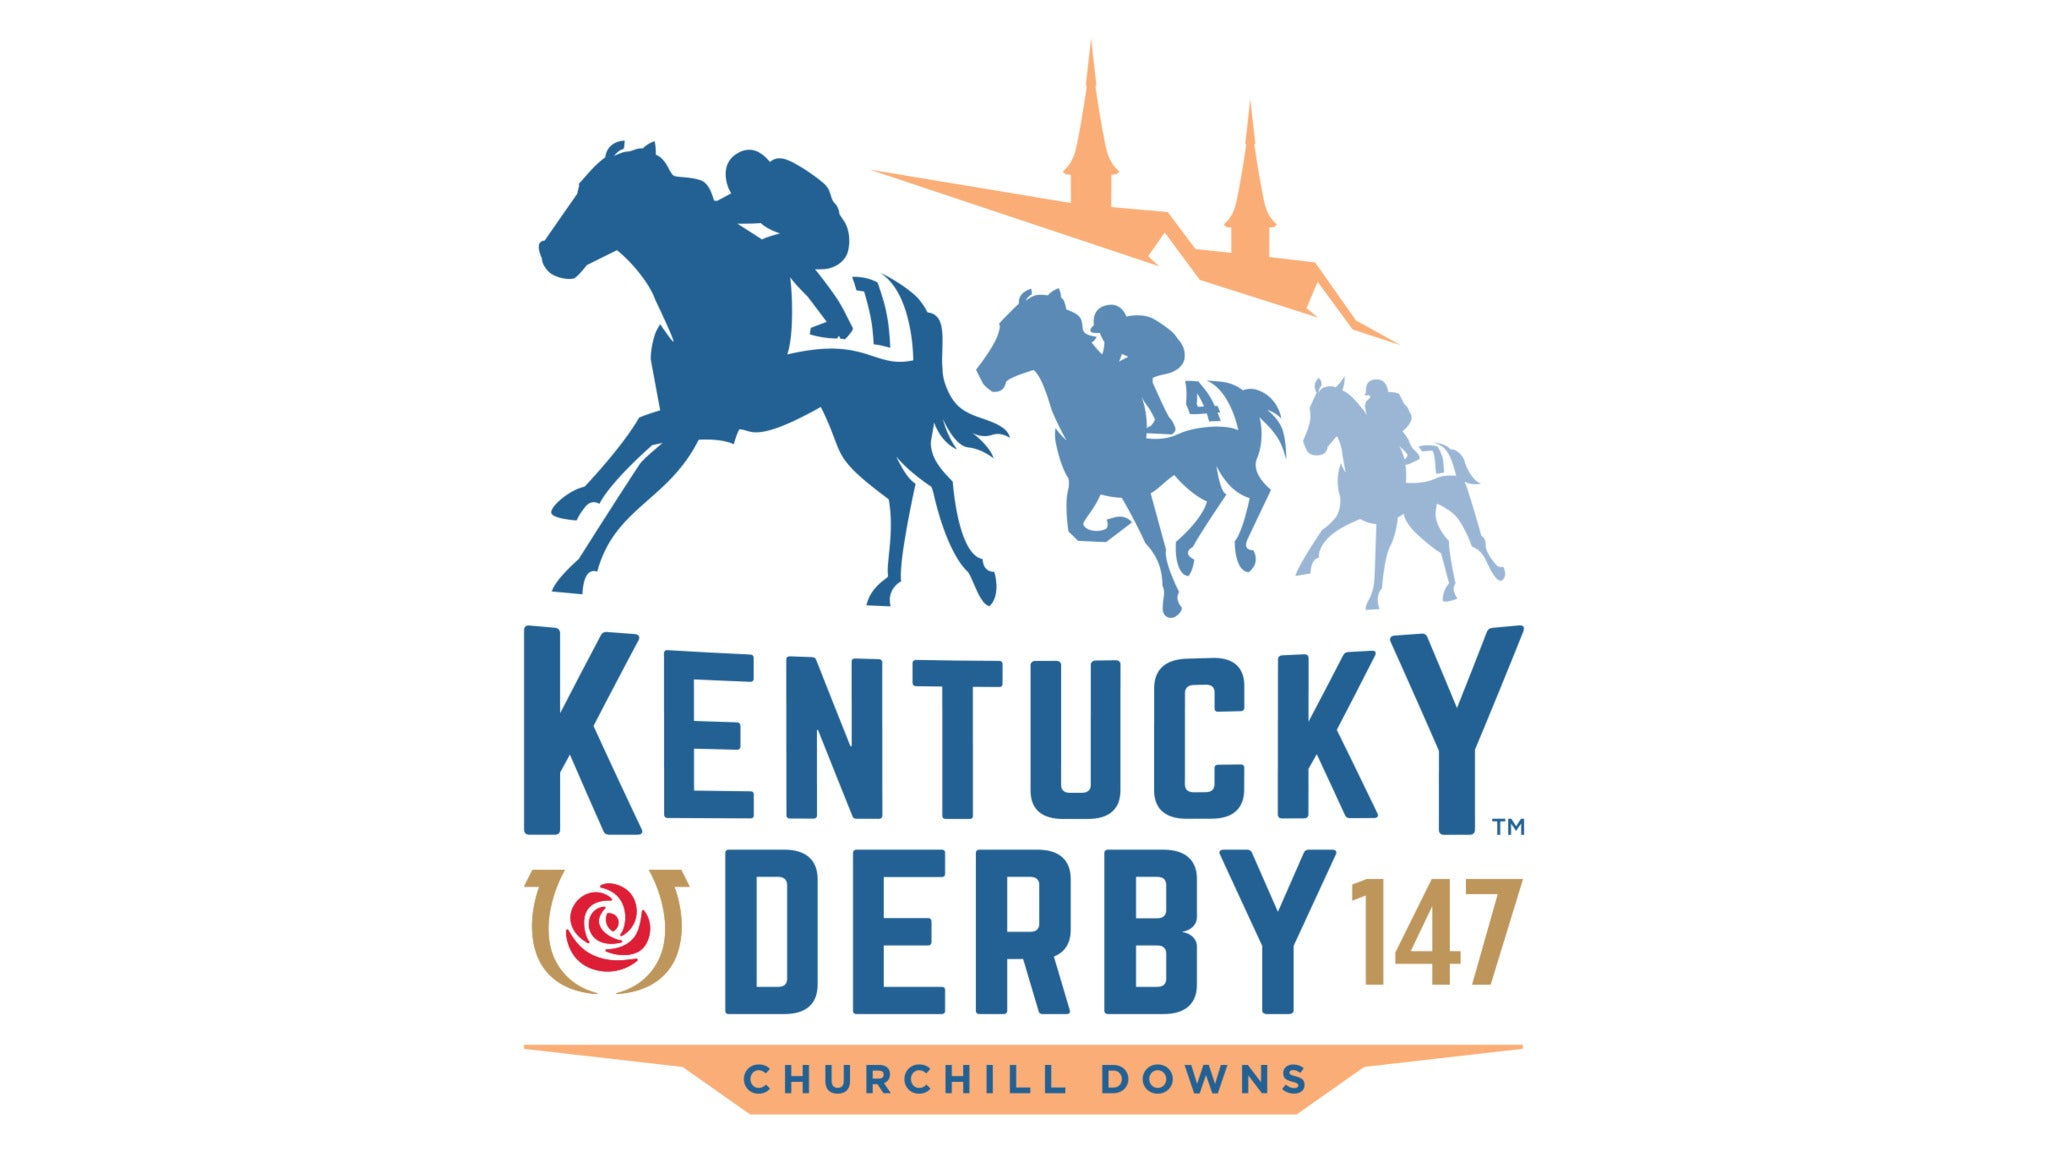 147th Kentucky Derby - Dining Hospitality Seating